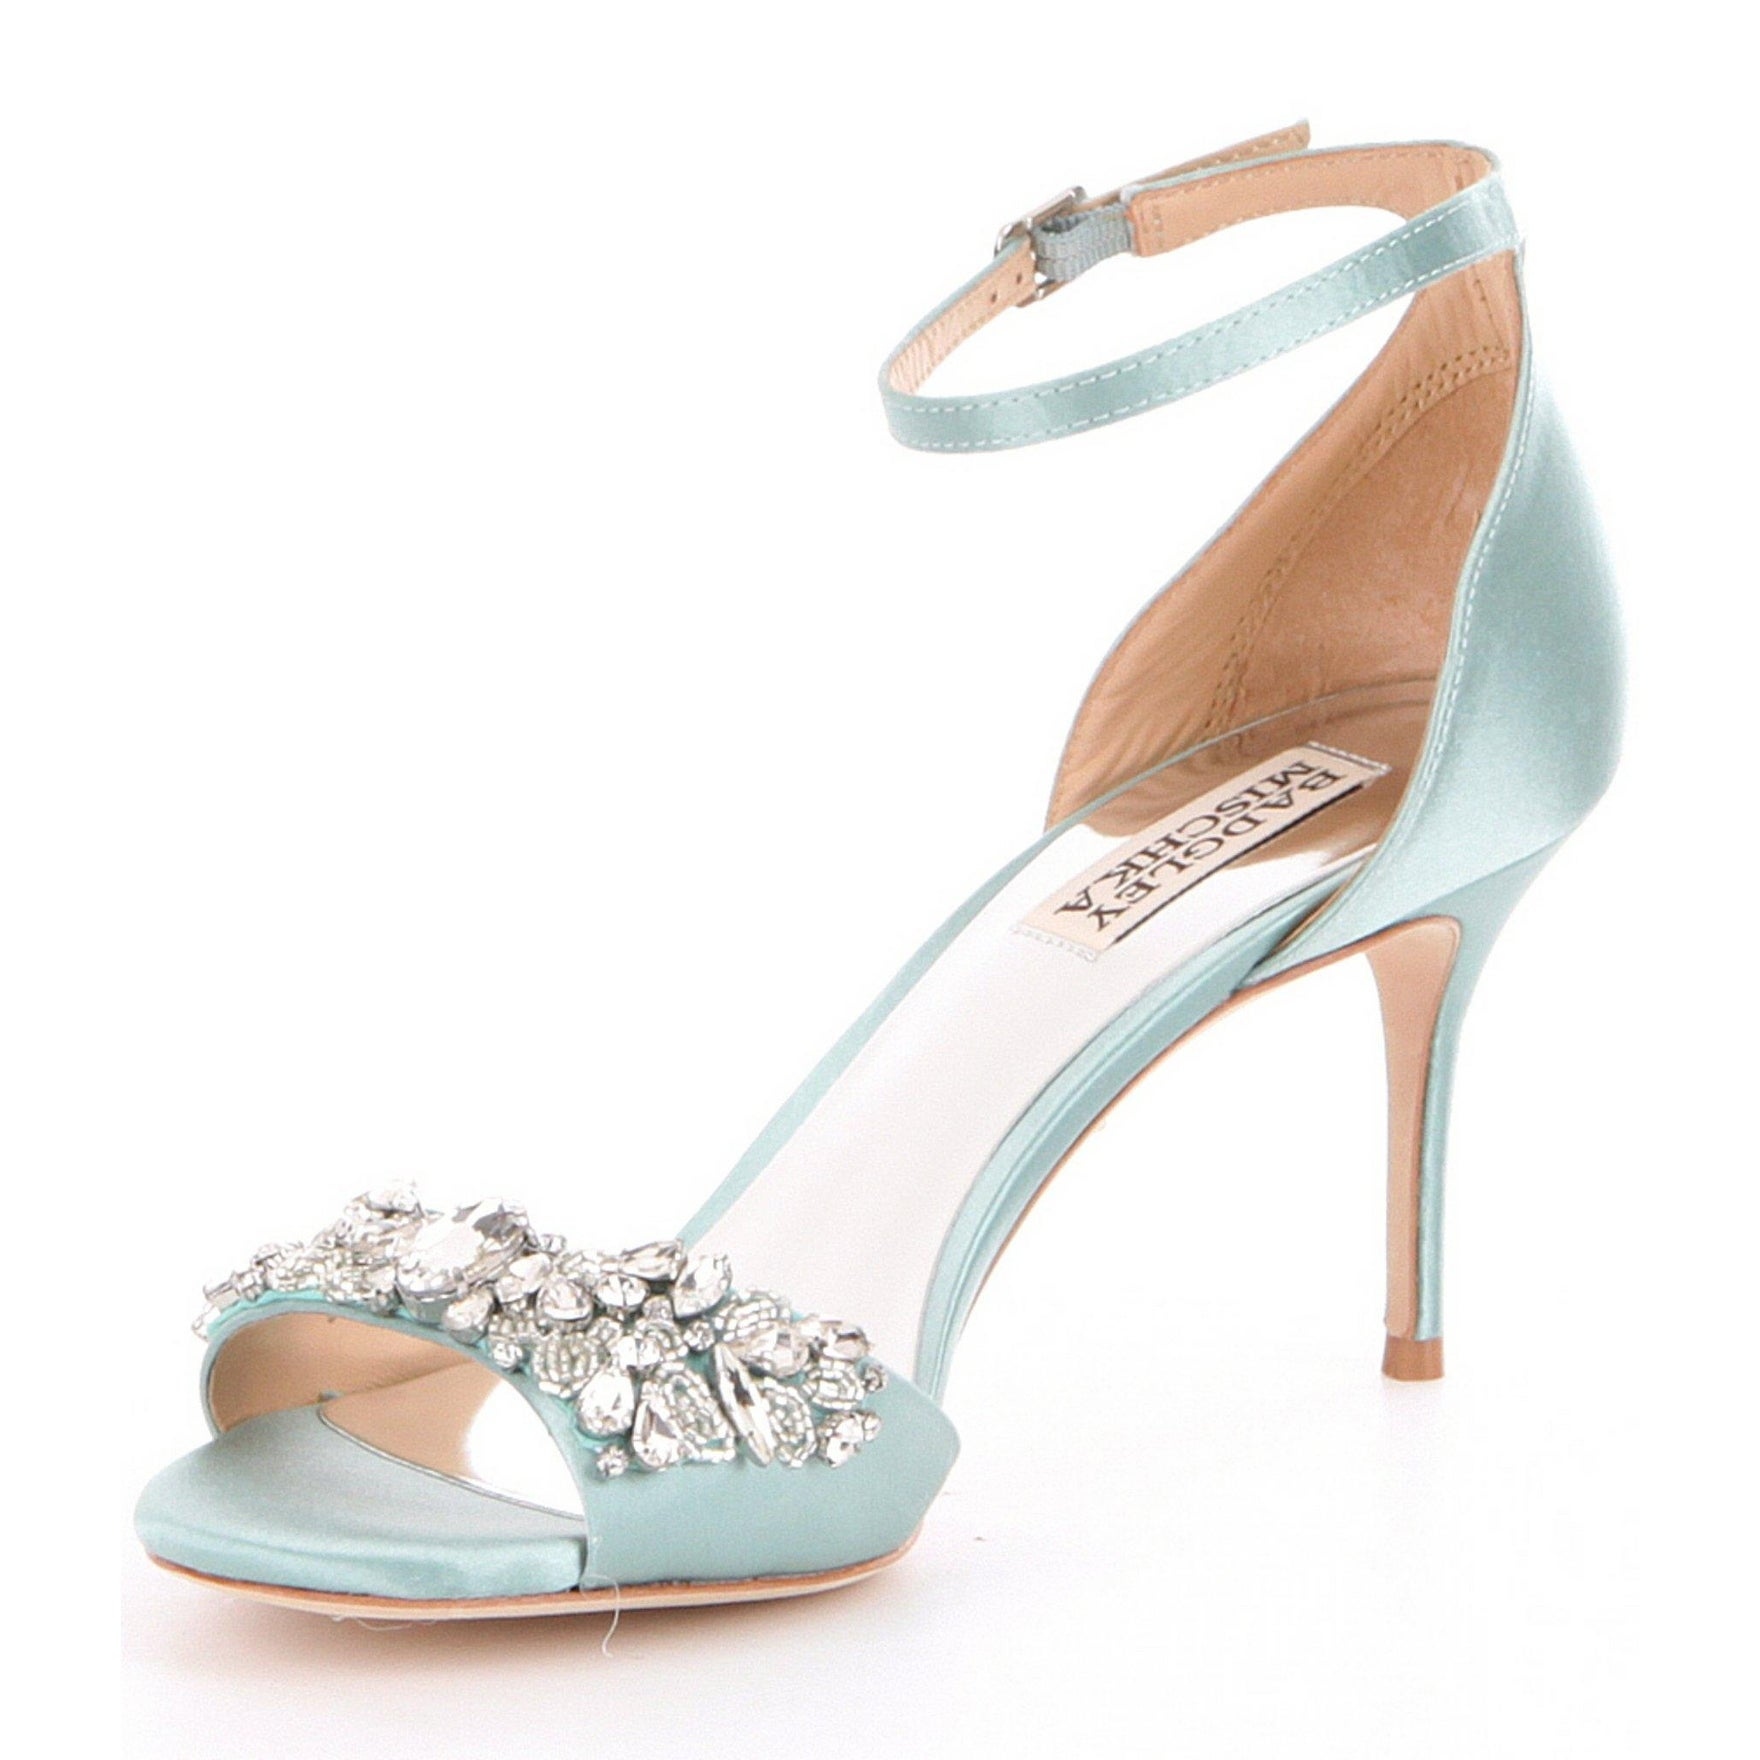 e61edbf50ed Shop BADGLEY MISCHKA Womens Bankston Open Toe Special Occasion Ankle Strap  Sandals - Free Shipping Today - Overstock - 17674663